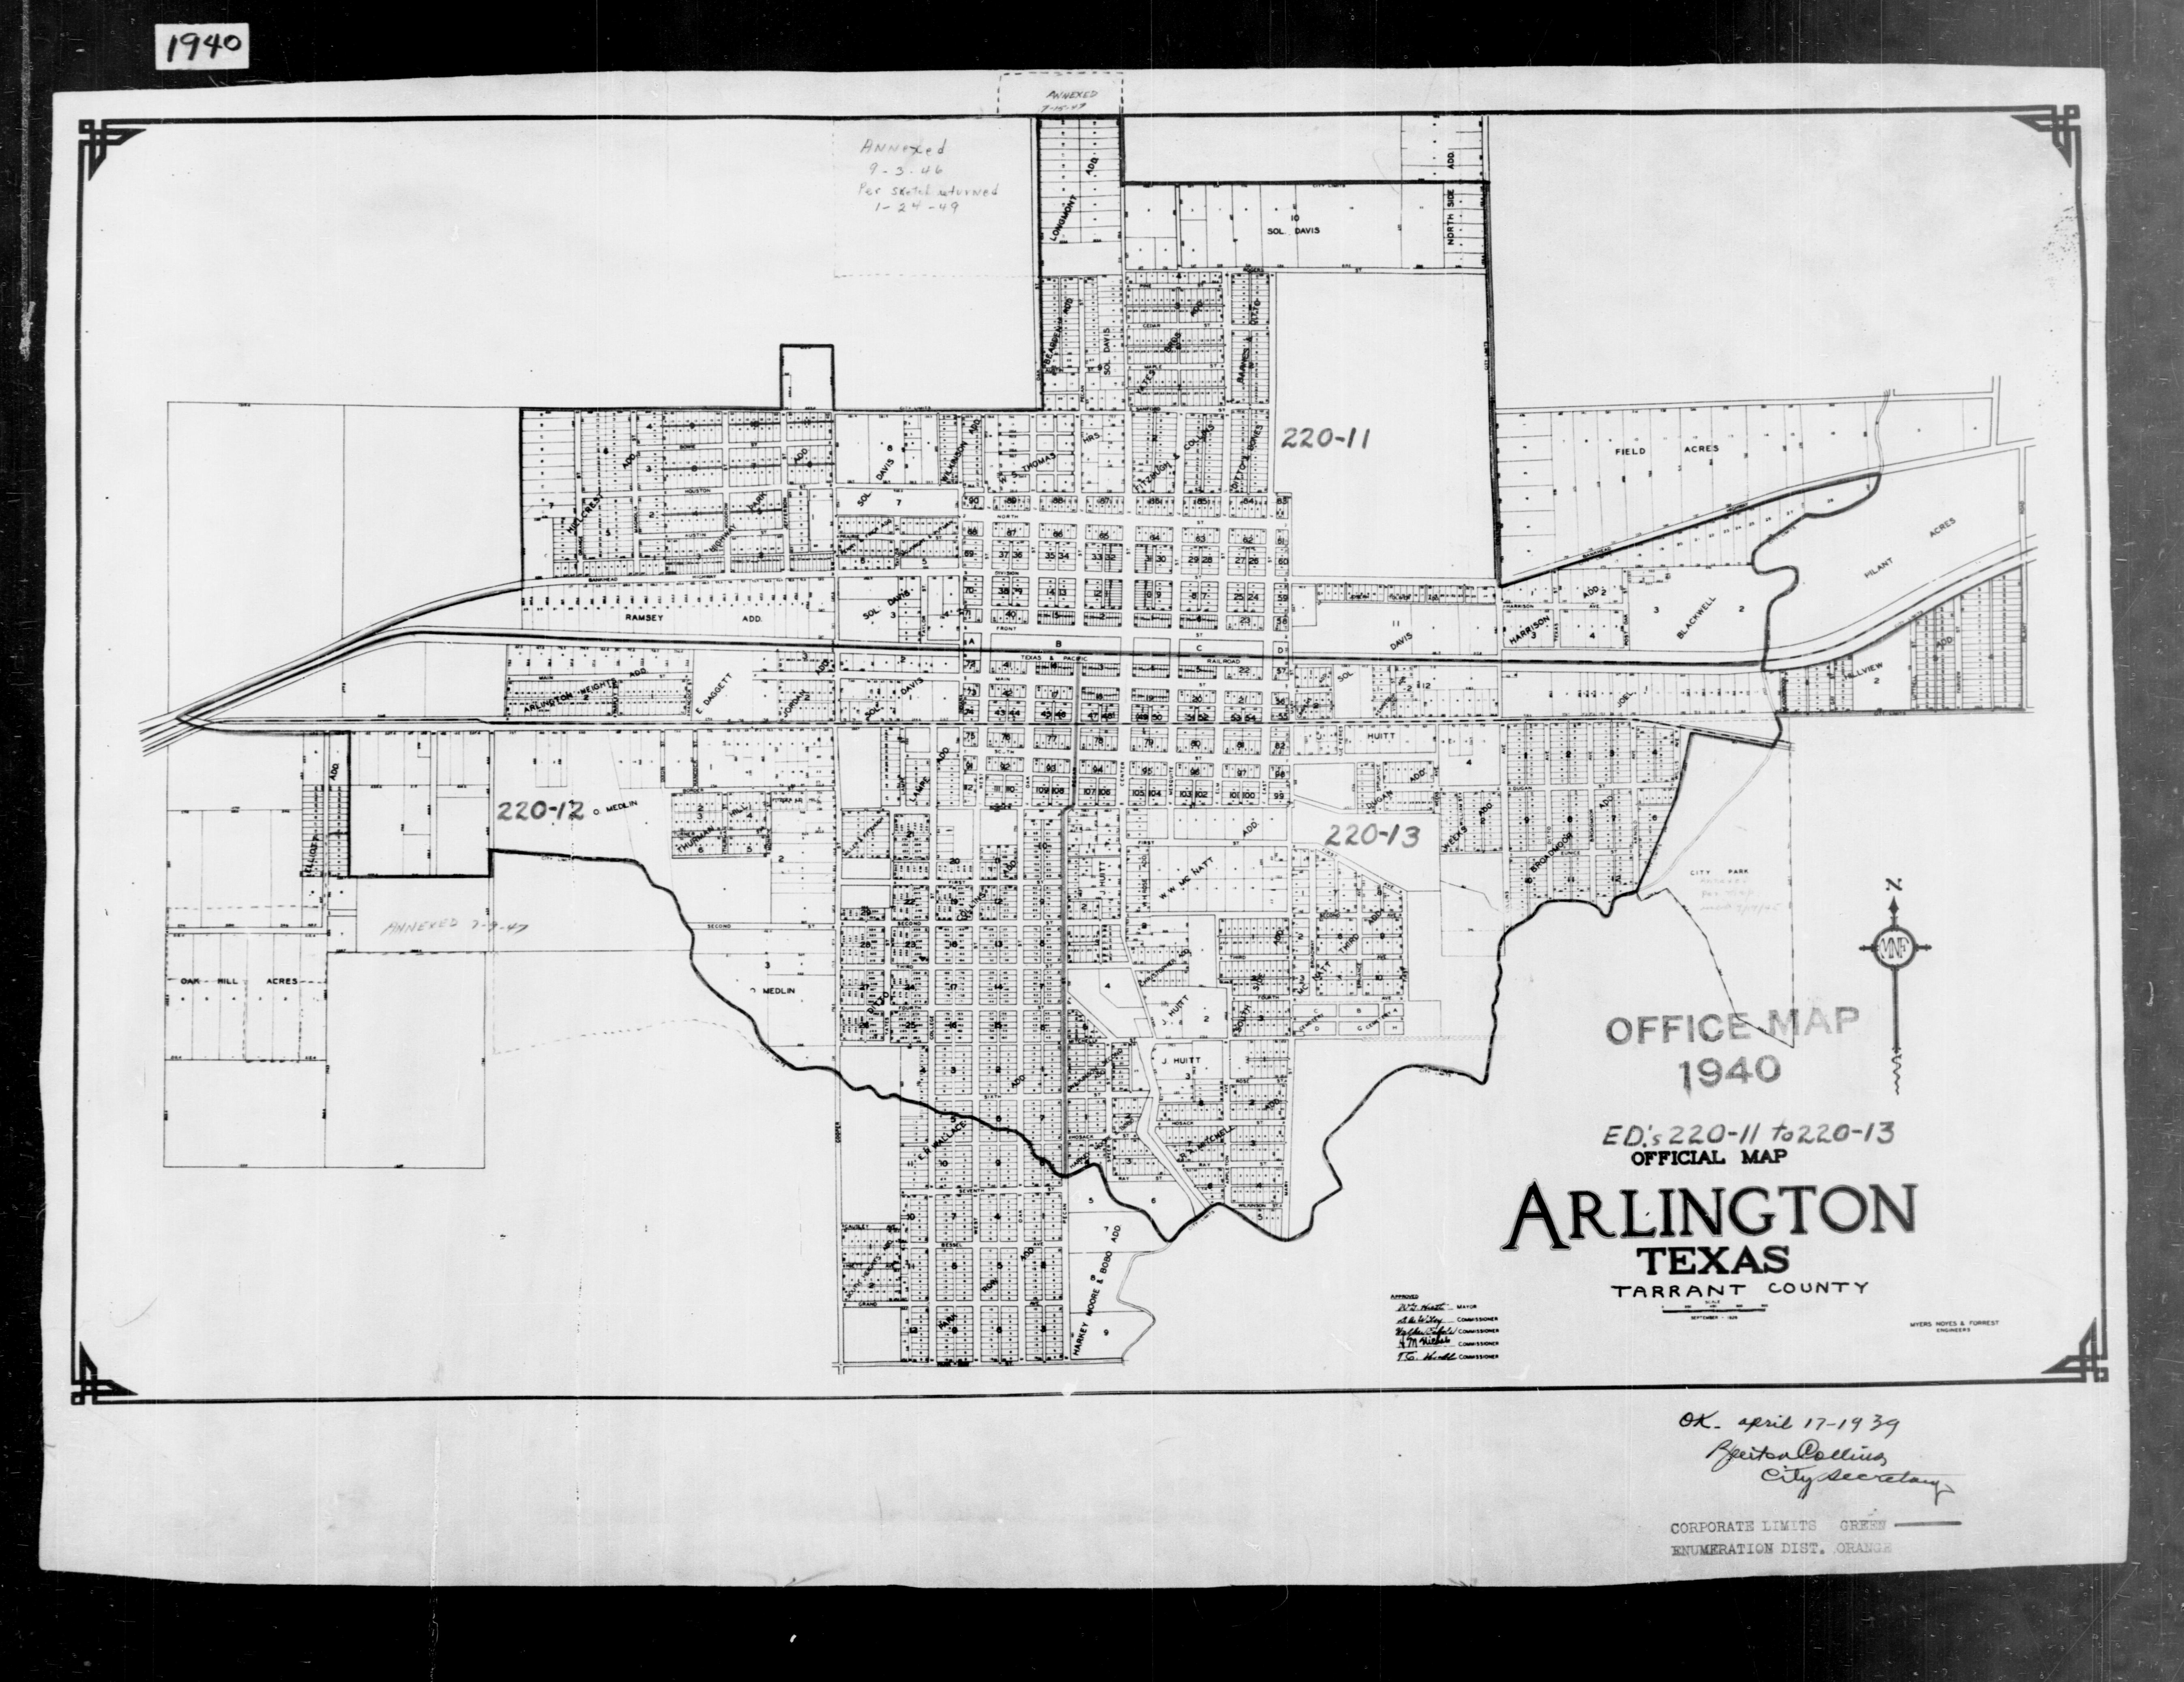 1940 Census Texas Enumeration District Maps - Perry-Castañeda Map on kilgore college map, missouri map of henderson, kilgore city map, current street map of texas henderson, kilgore tx map location,